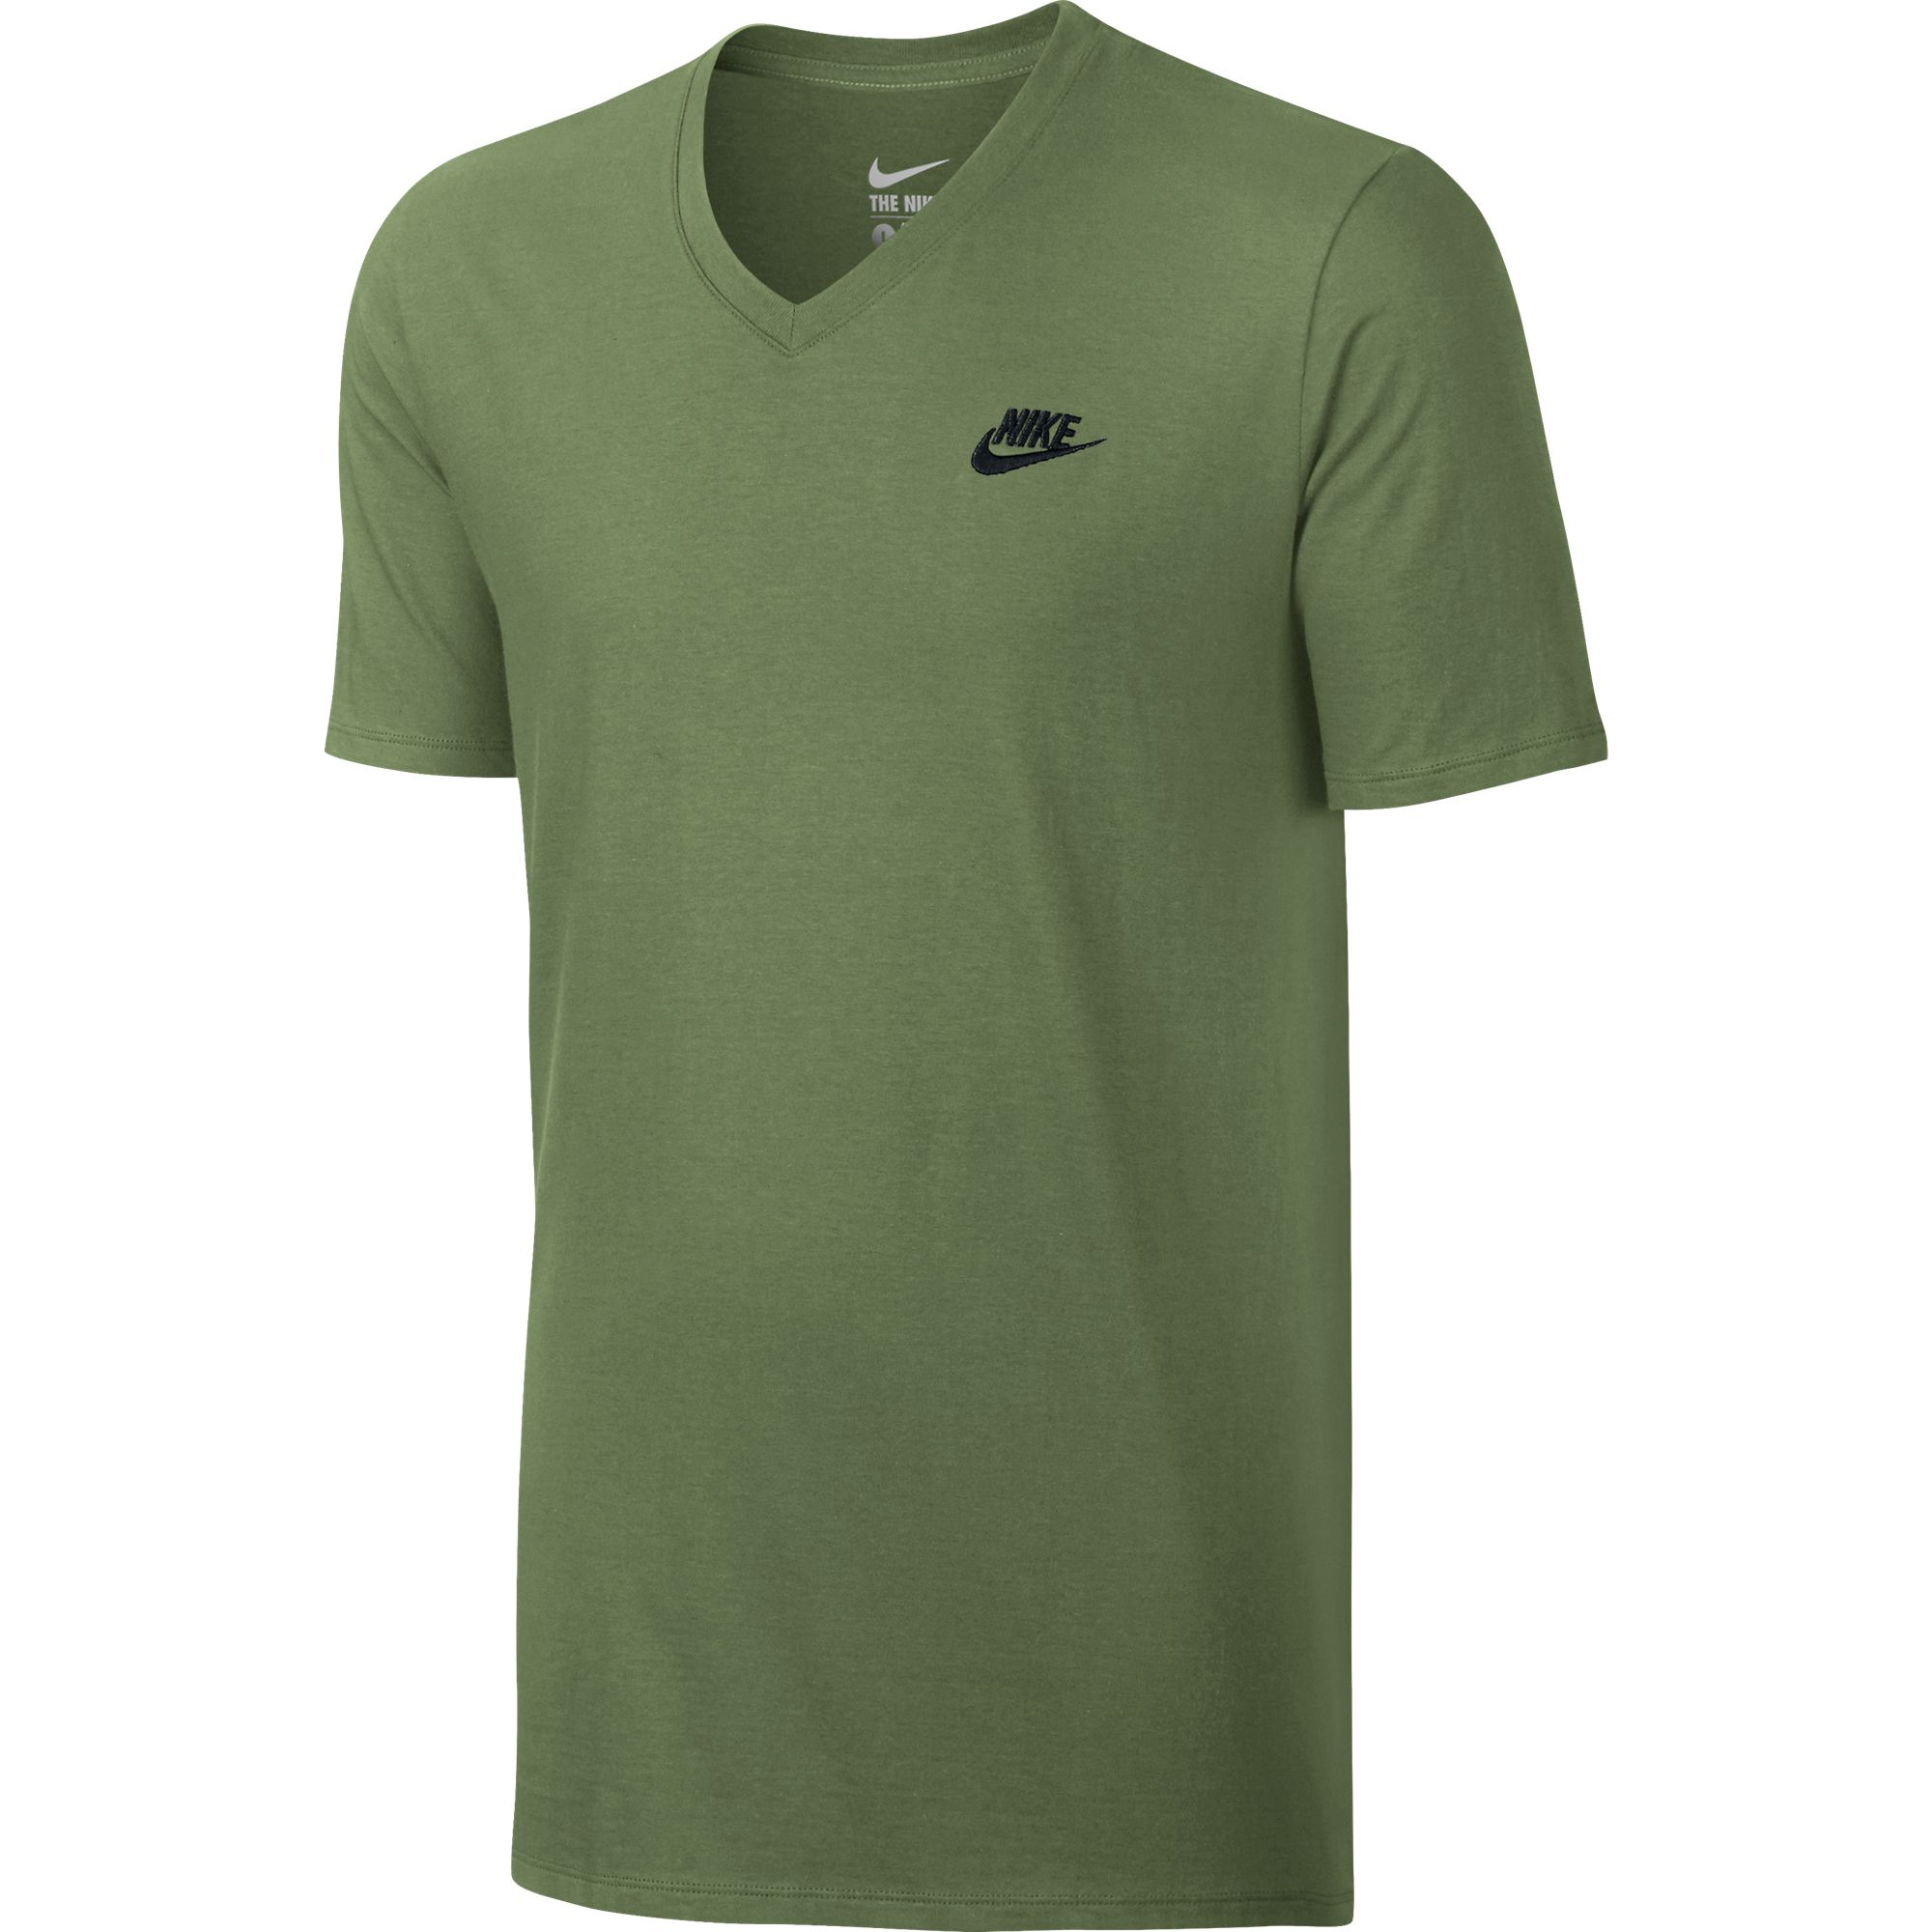 Nike men 39 s v neck club embroidered swoosh t shirt palm for The best white dress shirt